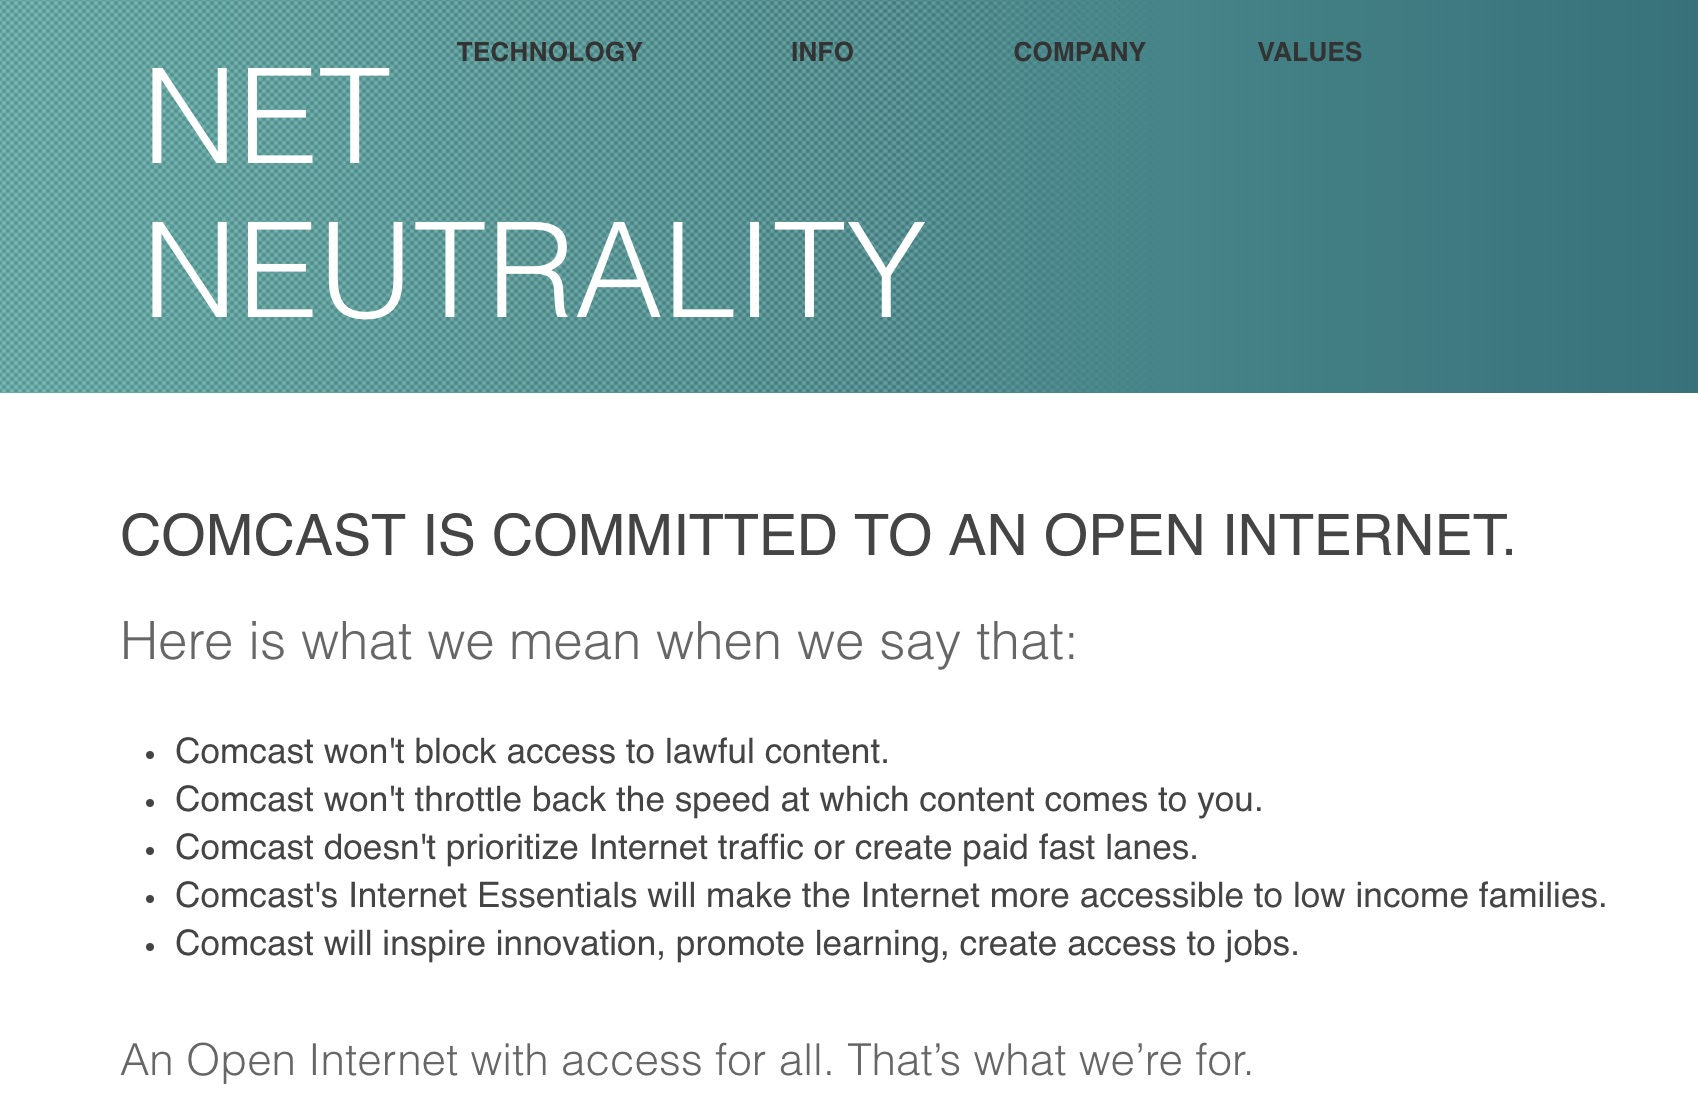 Comcast deleted net neutrality pledge the same day FCC announced